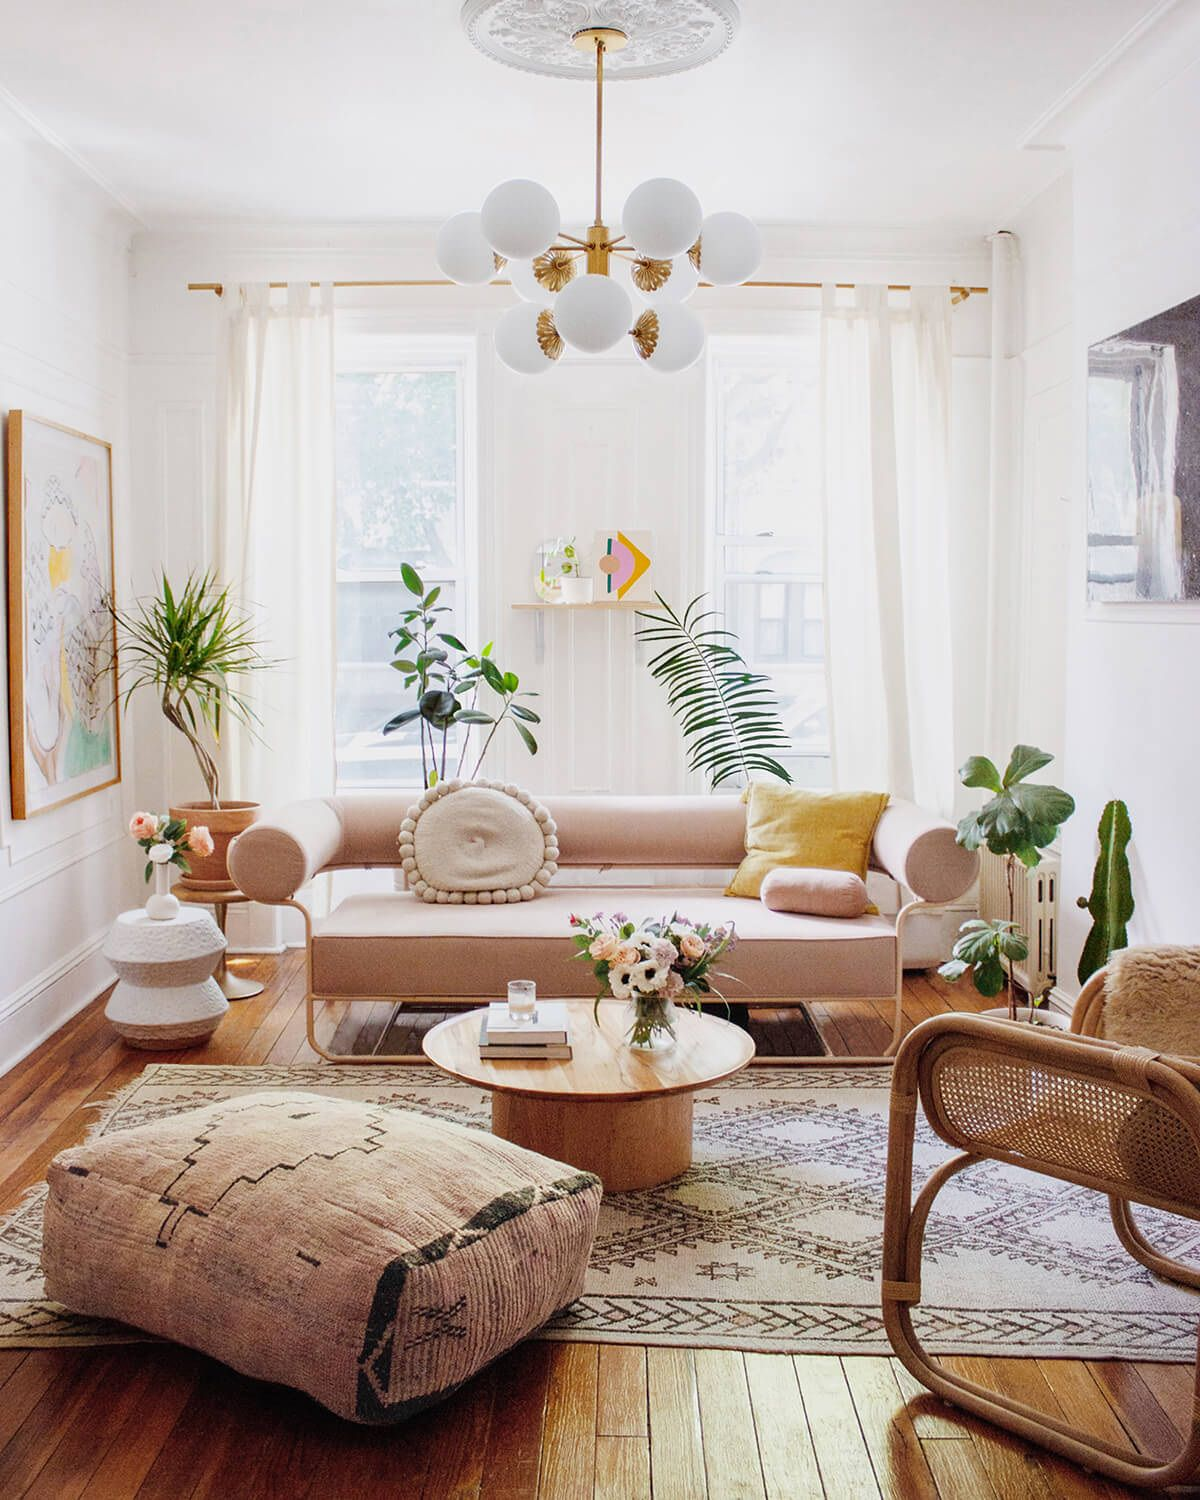 55 Simple Decorating Ideas For Small Living Room 2021 Apartment Living Room Design Living Room Decor Apartment Small Apartment Living Room Design